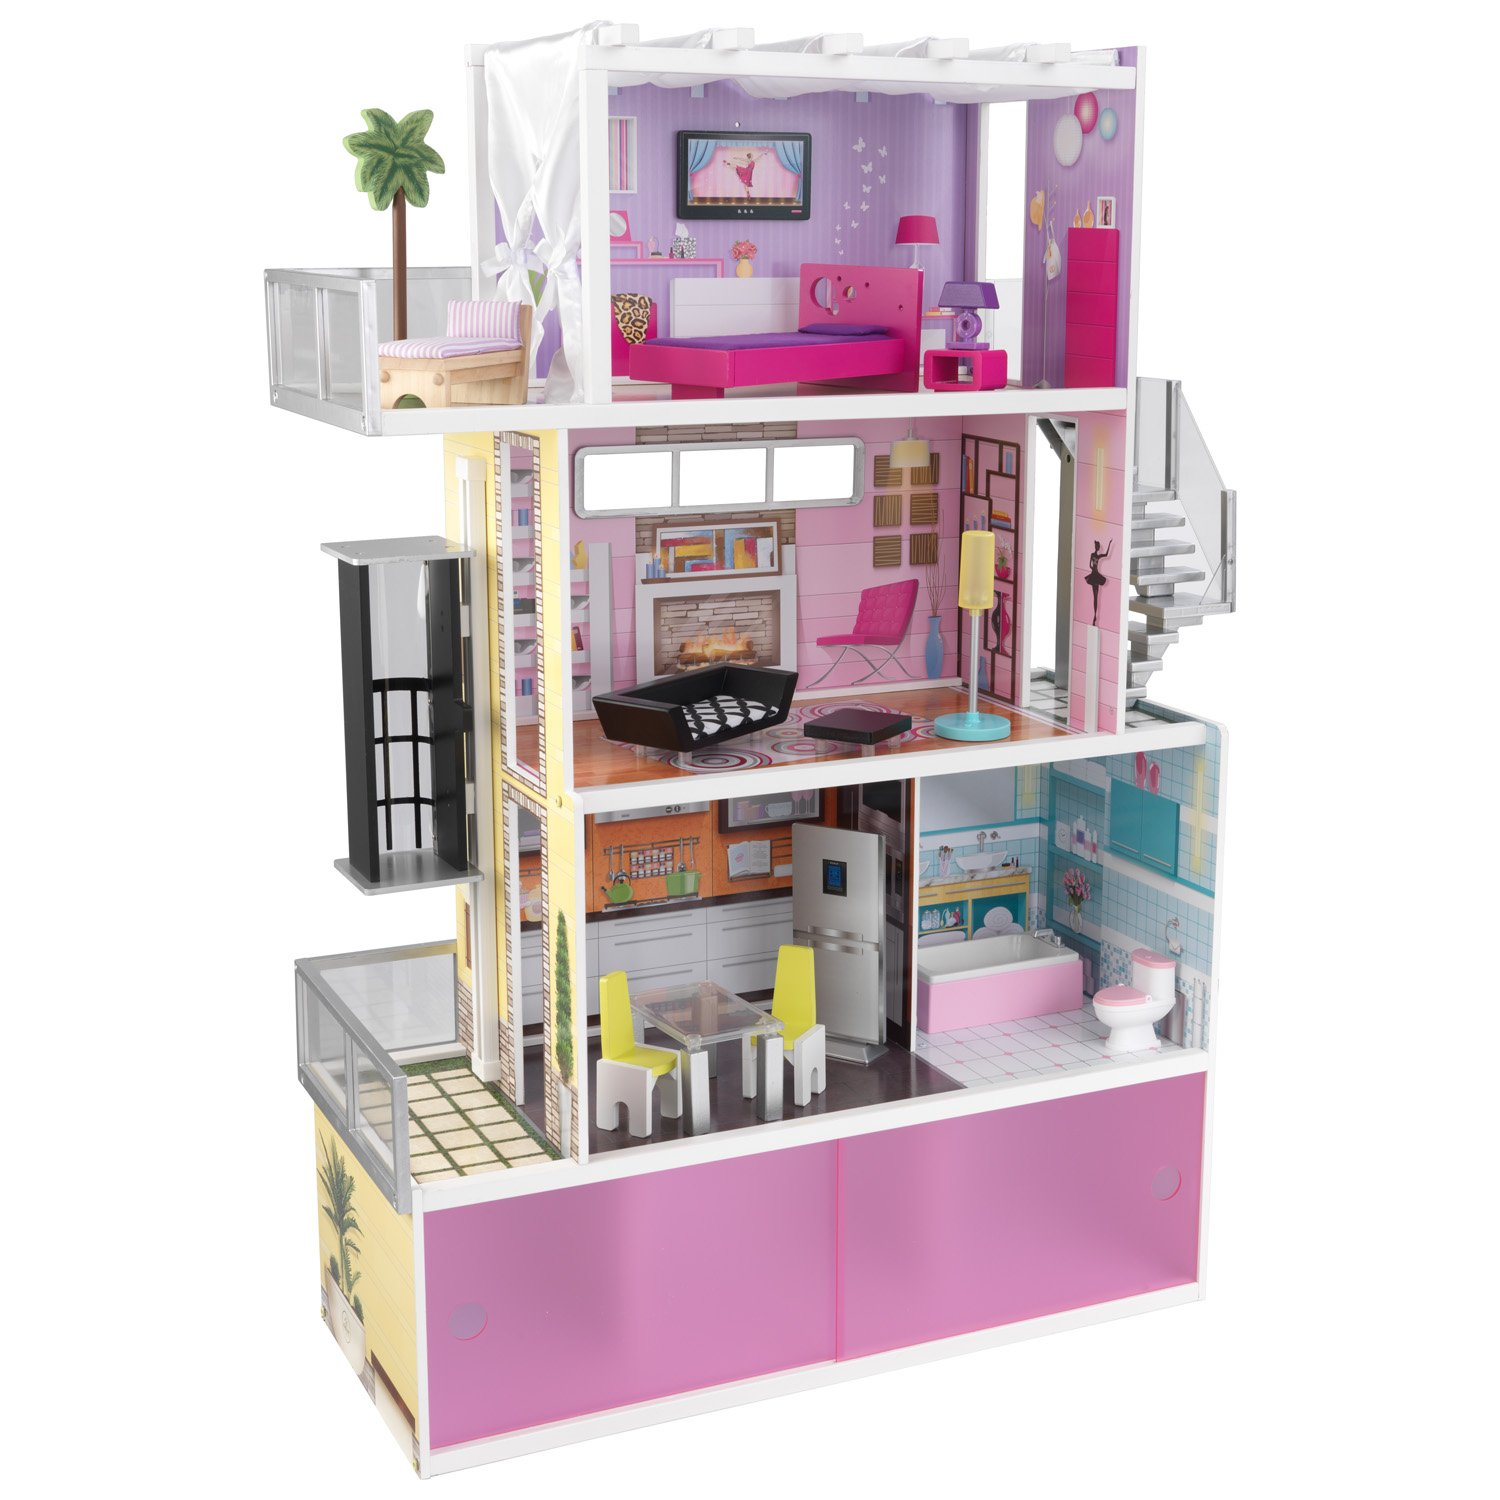 unfinished dollhouse furniture. Wooden Barbie Dollhouse Furniture. Furniture N Unfinished O